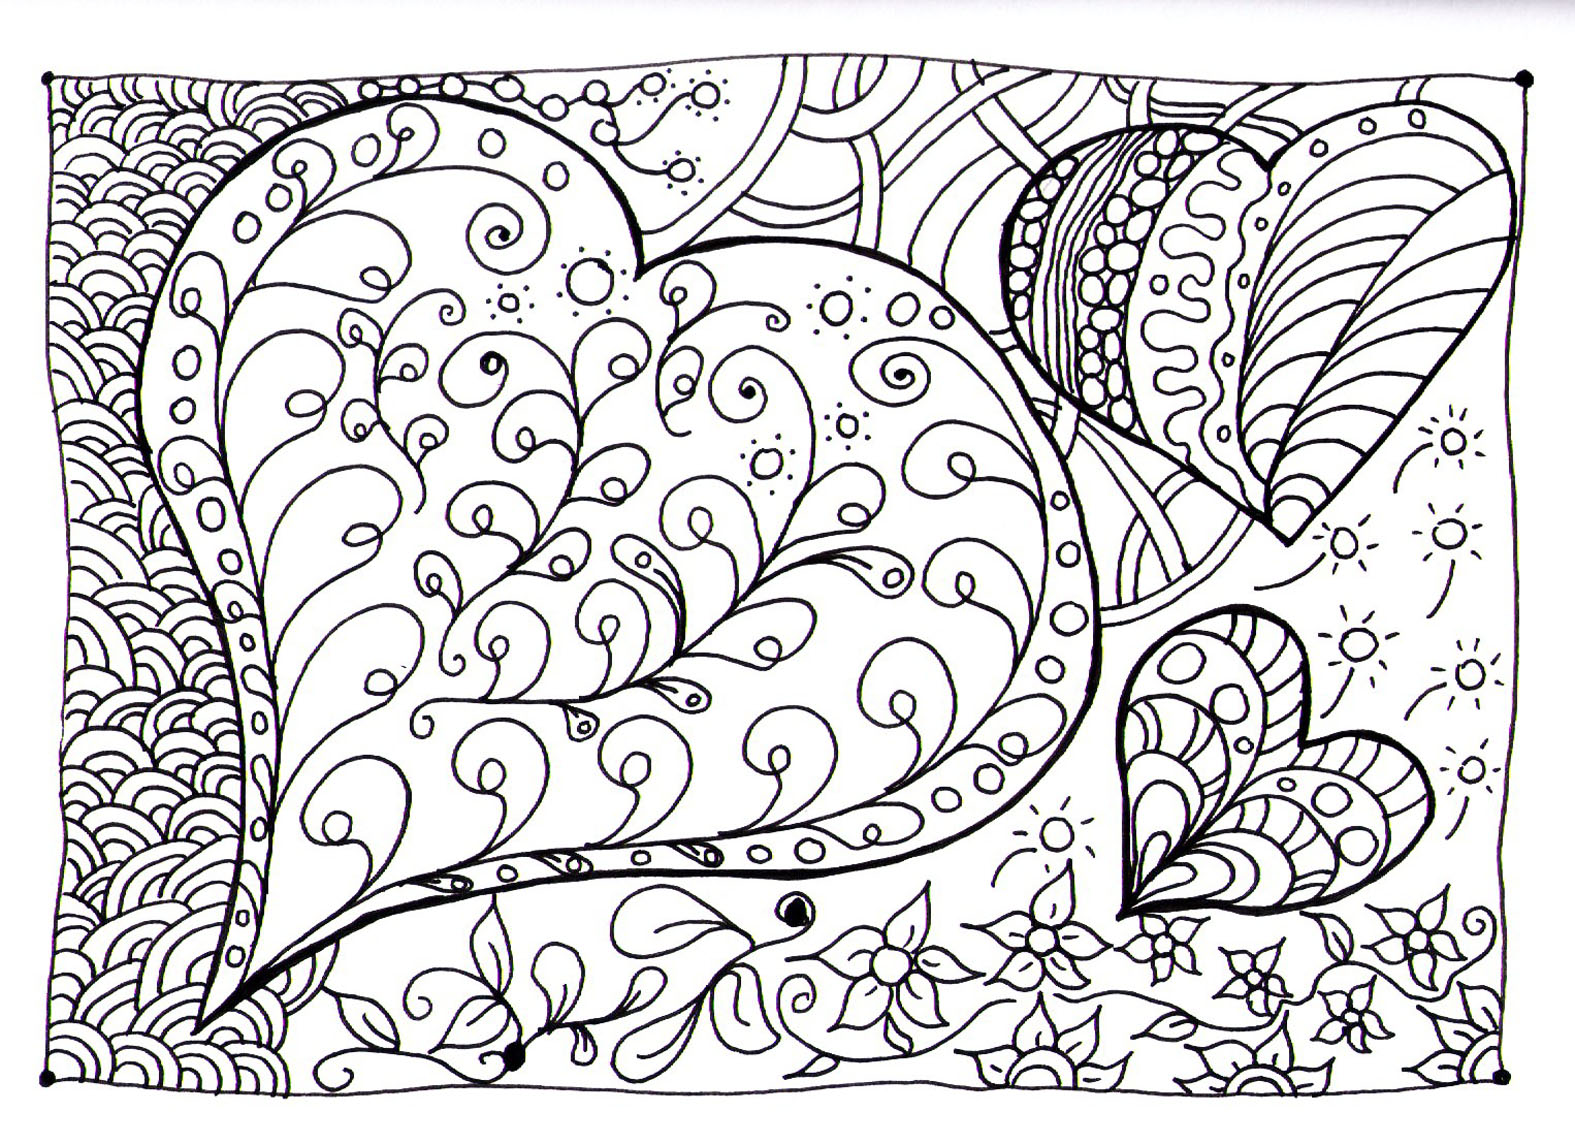 Stress coloring books - Heart Zen From The Gallery Zen Anti Stress